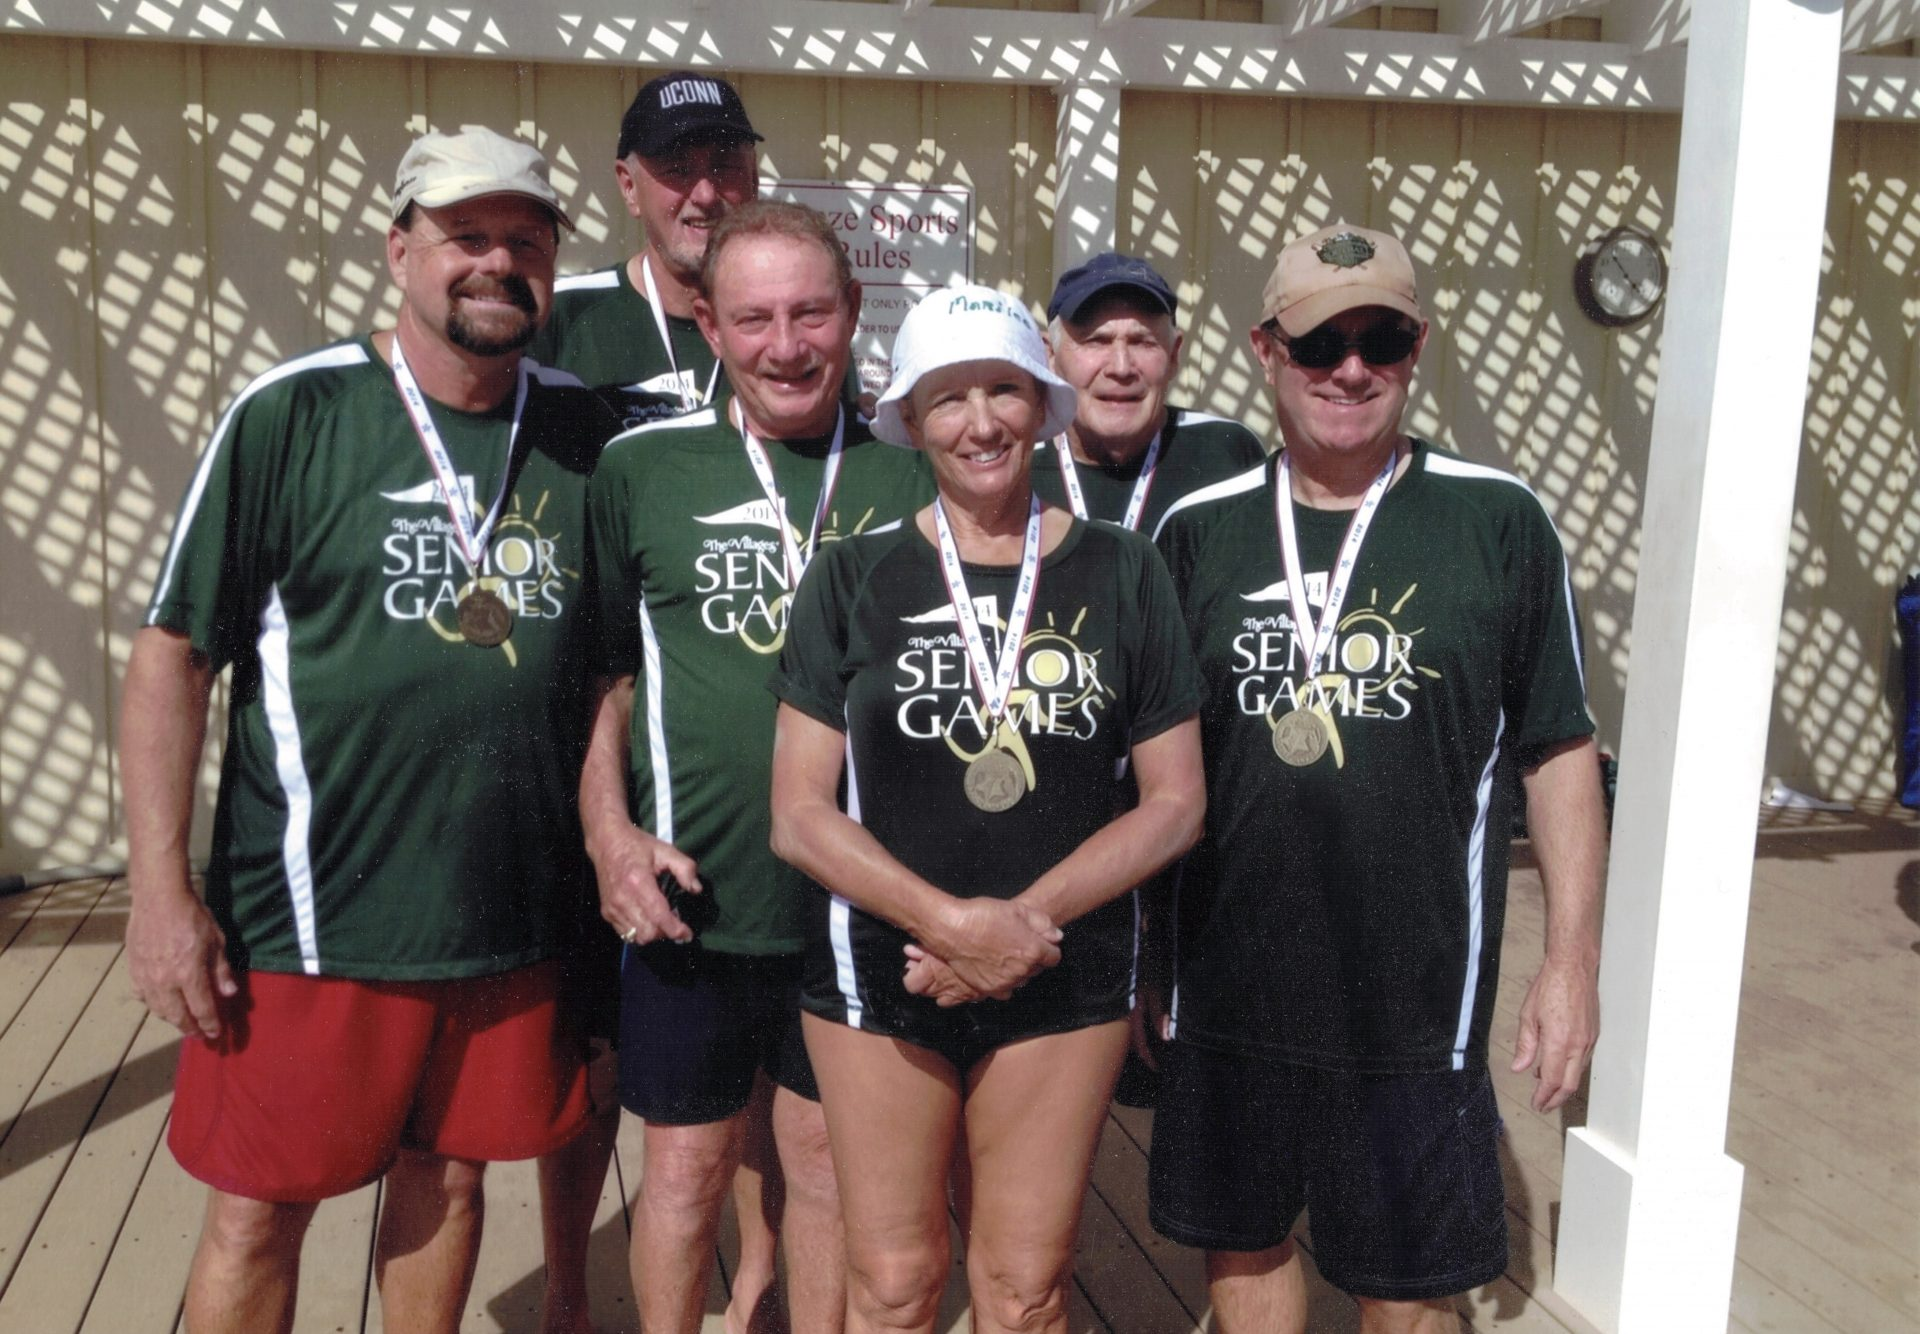 One of Michael's favorite activities, water volleyball. In The Villages Senior Games of 2014, Michael anchored the Gold Medal winning Intermediate team. L-R Michael Gavigan, Larry Cohen, Stu Kaufman, Merilee Fisk, Art Rogers and Eric Ehlers. RIP Michael.